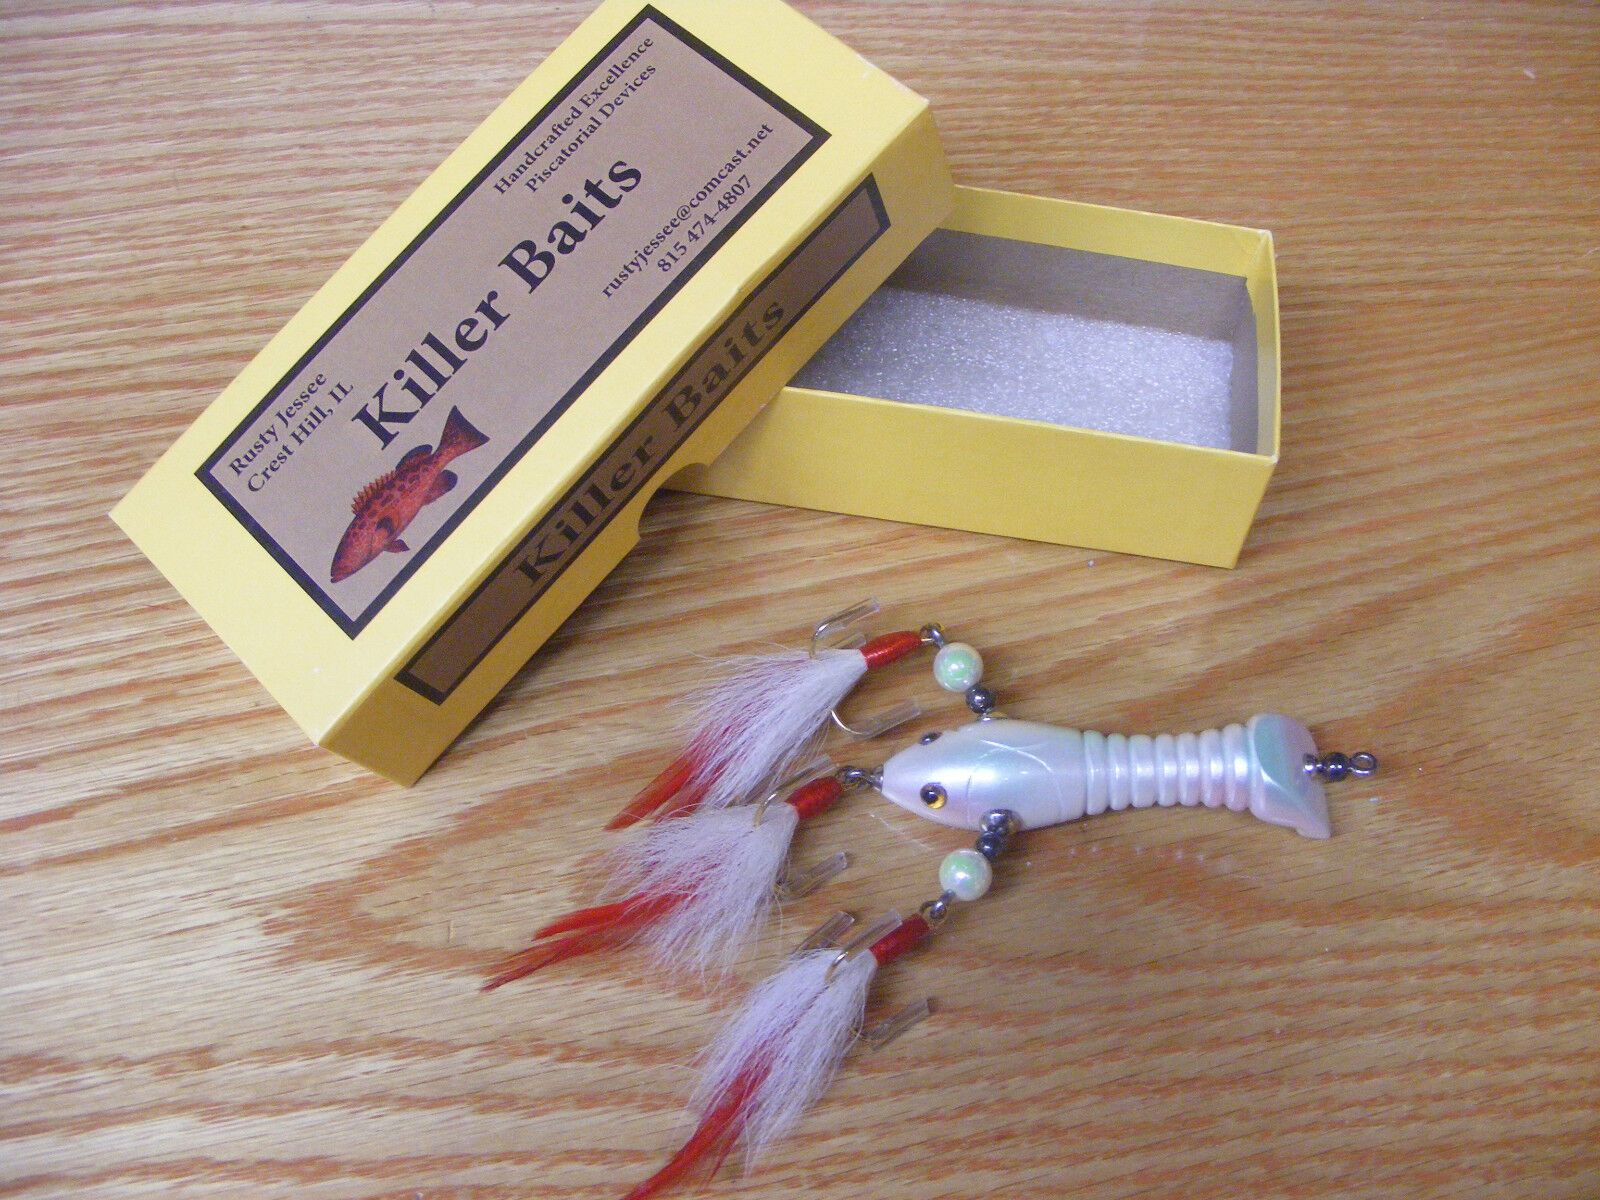 Killer Baits Rusty Jessee Contemporary Glasseye Baby Crawfish in Ice Pearl color